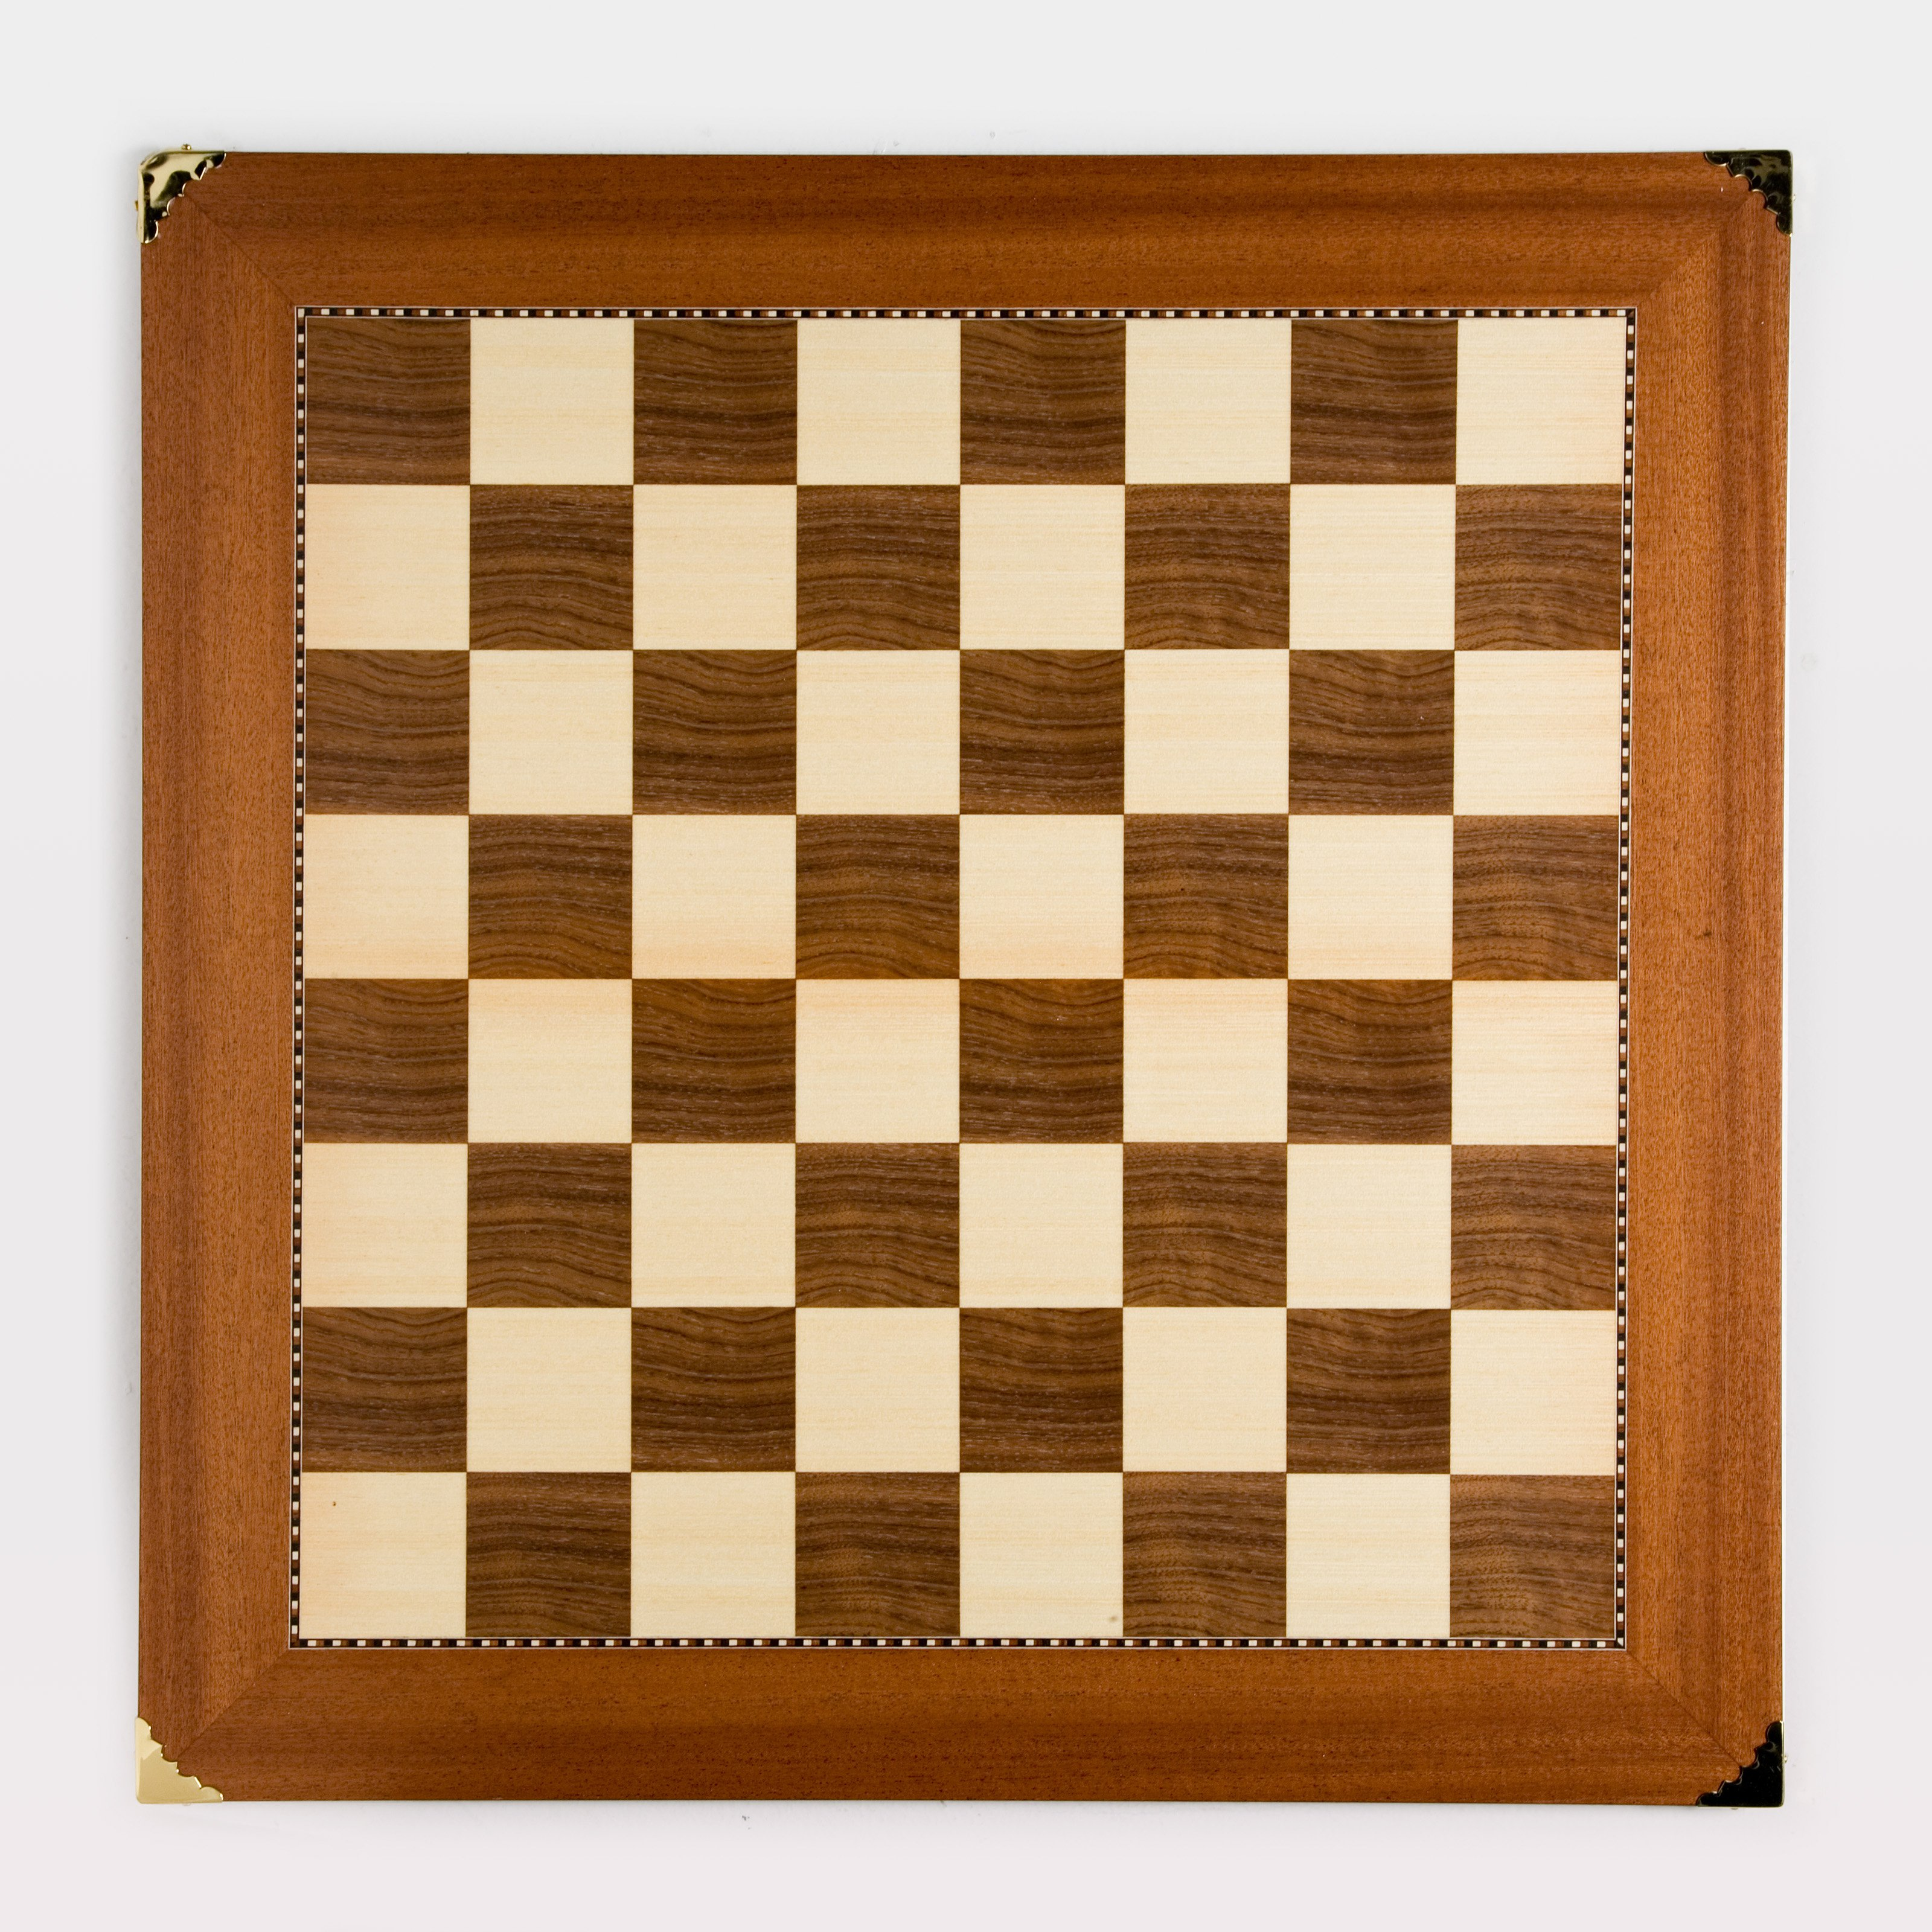 Champion Sycamore/Walnut Chess Board